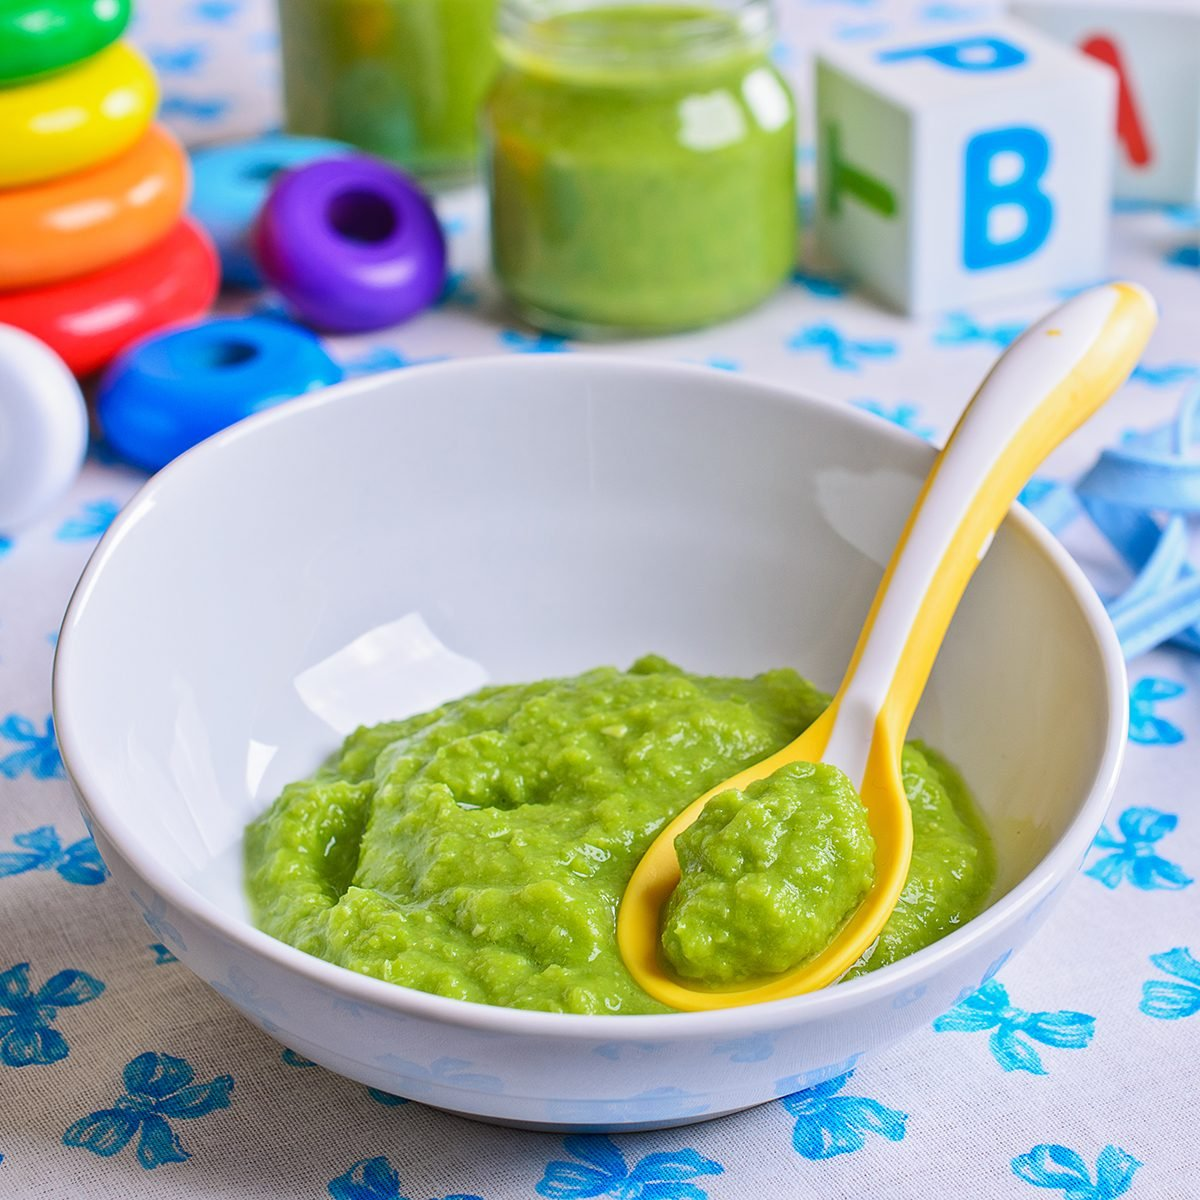 Puree of green in the small bowl is on the background of childrens toys